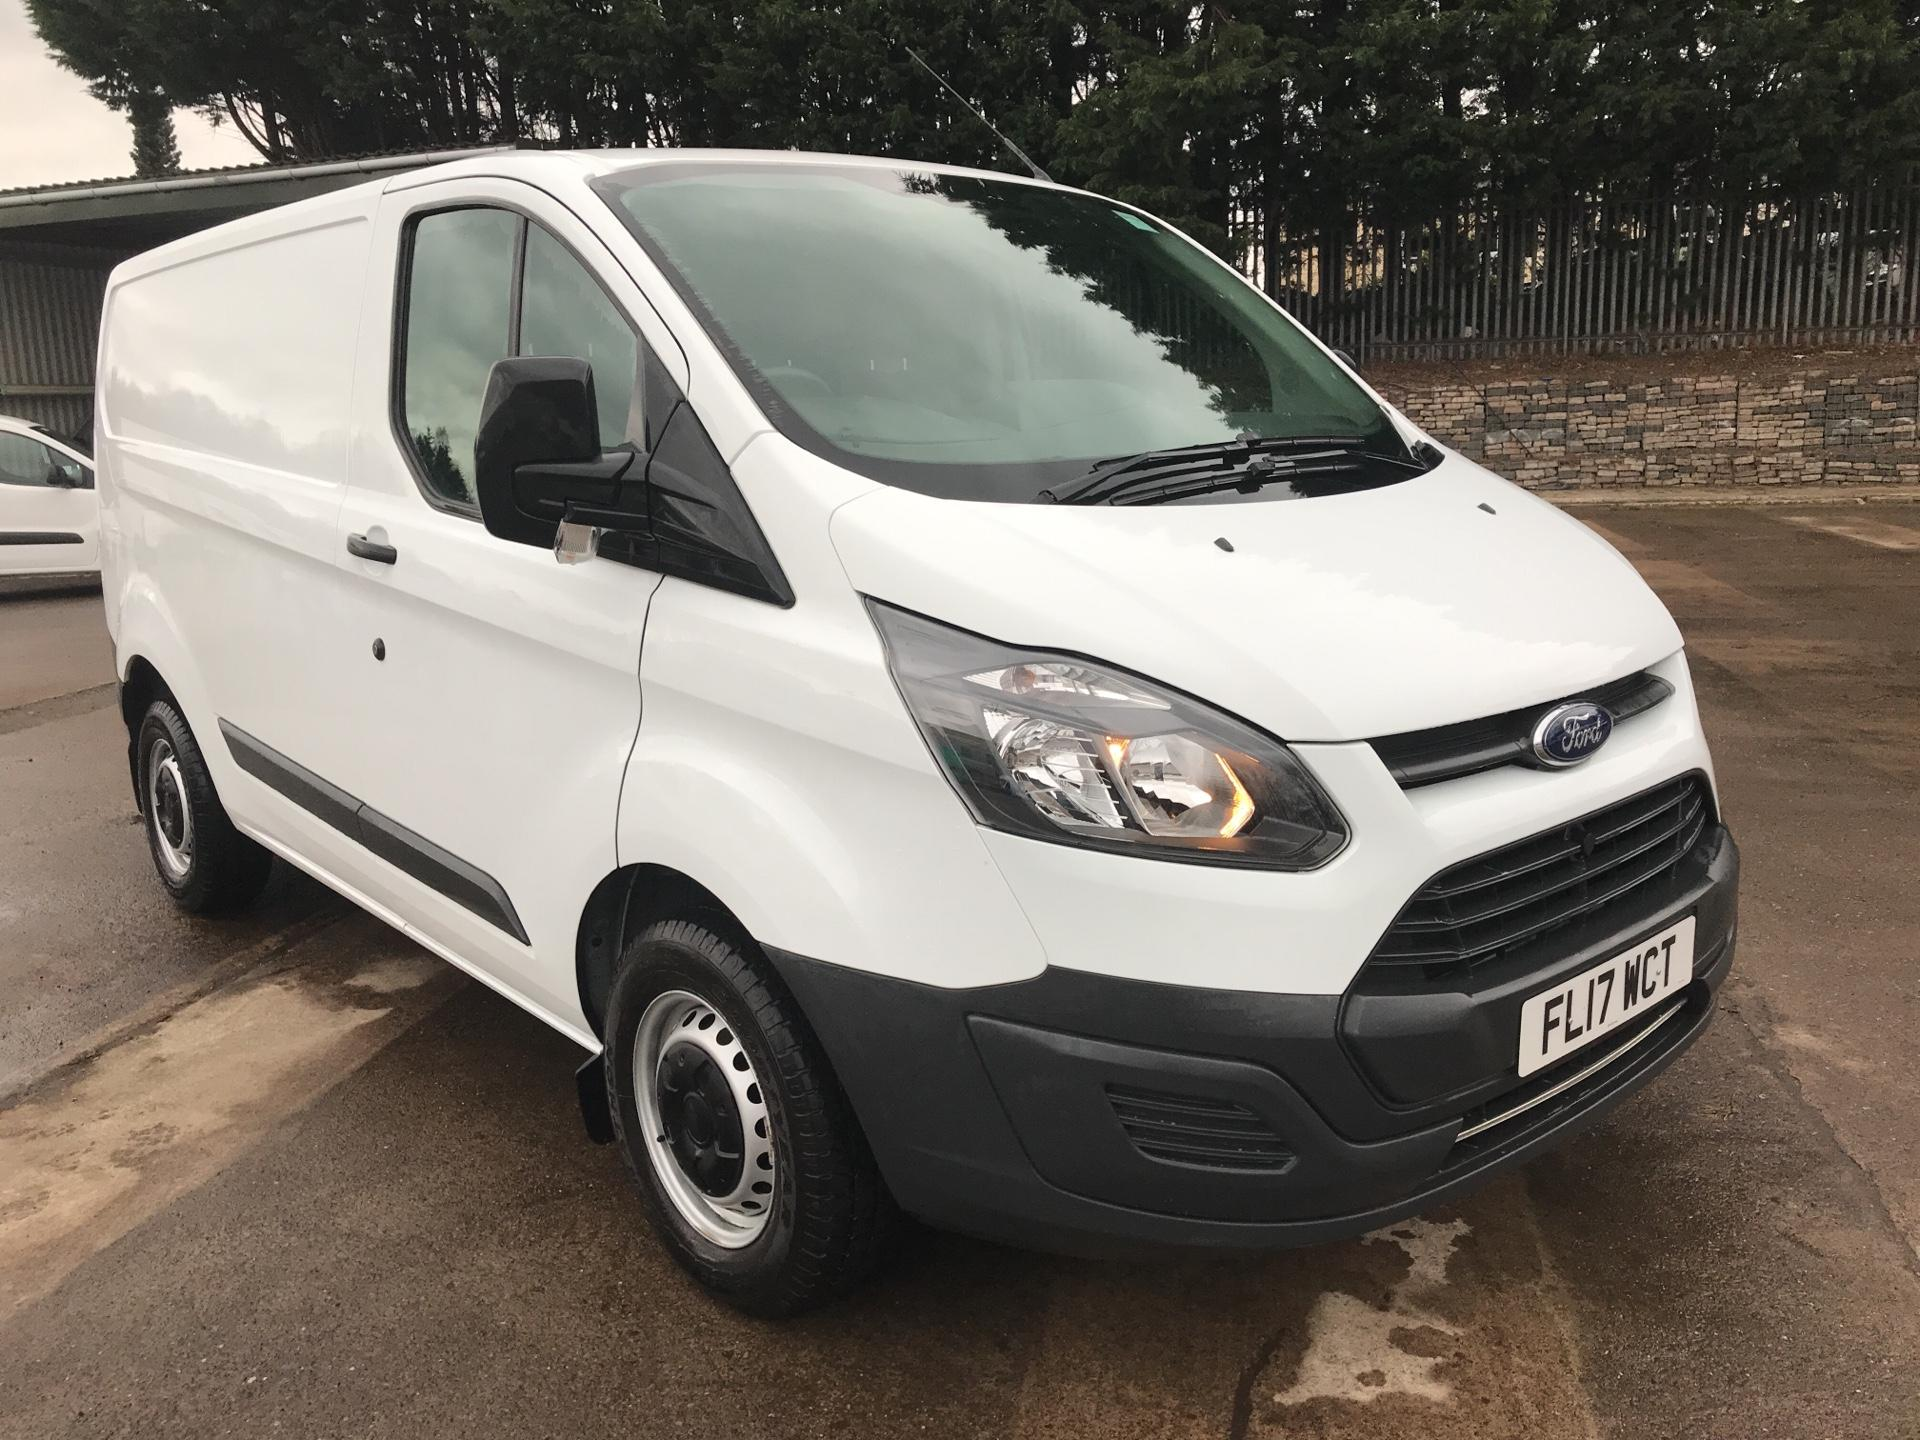 2017 Ford Transit Custom 290 L1 DIESEL FWD 2.0 TDCI 105PS LOW ROOF VAN EURO 6 (FL17WCT)